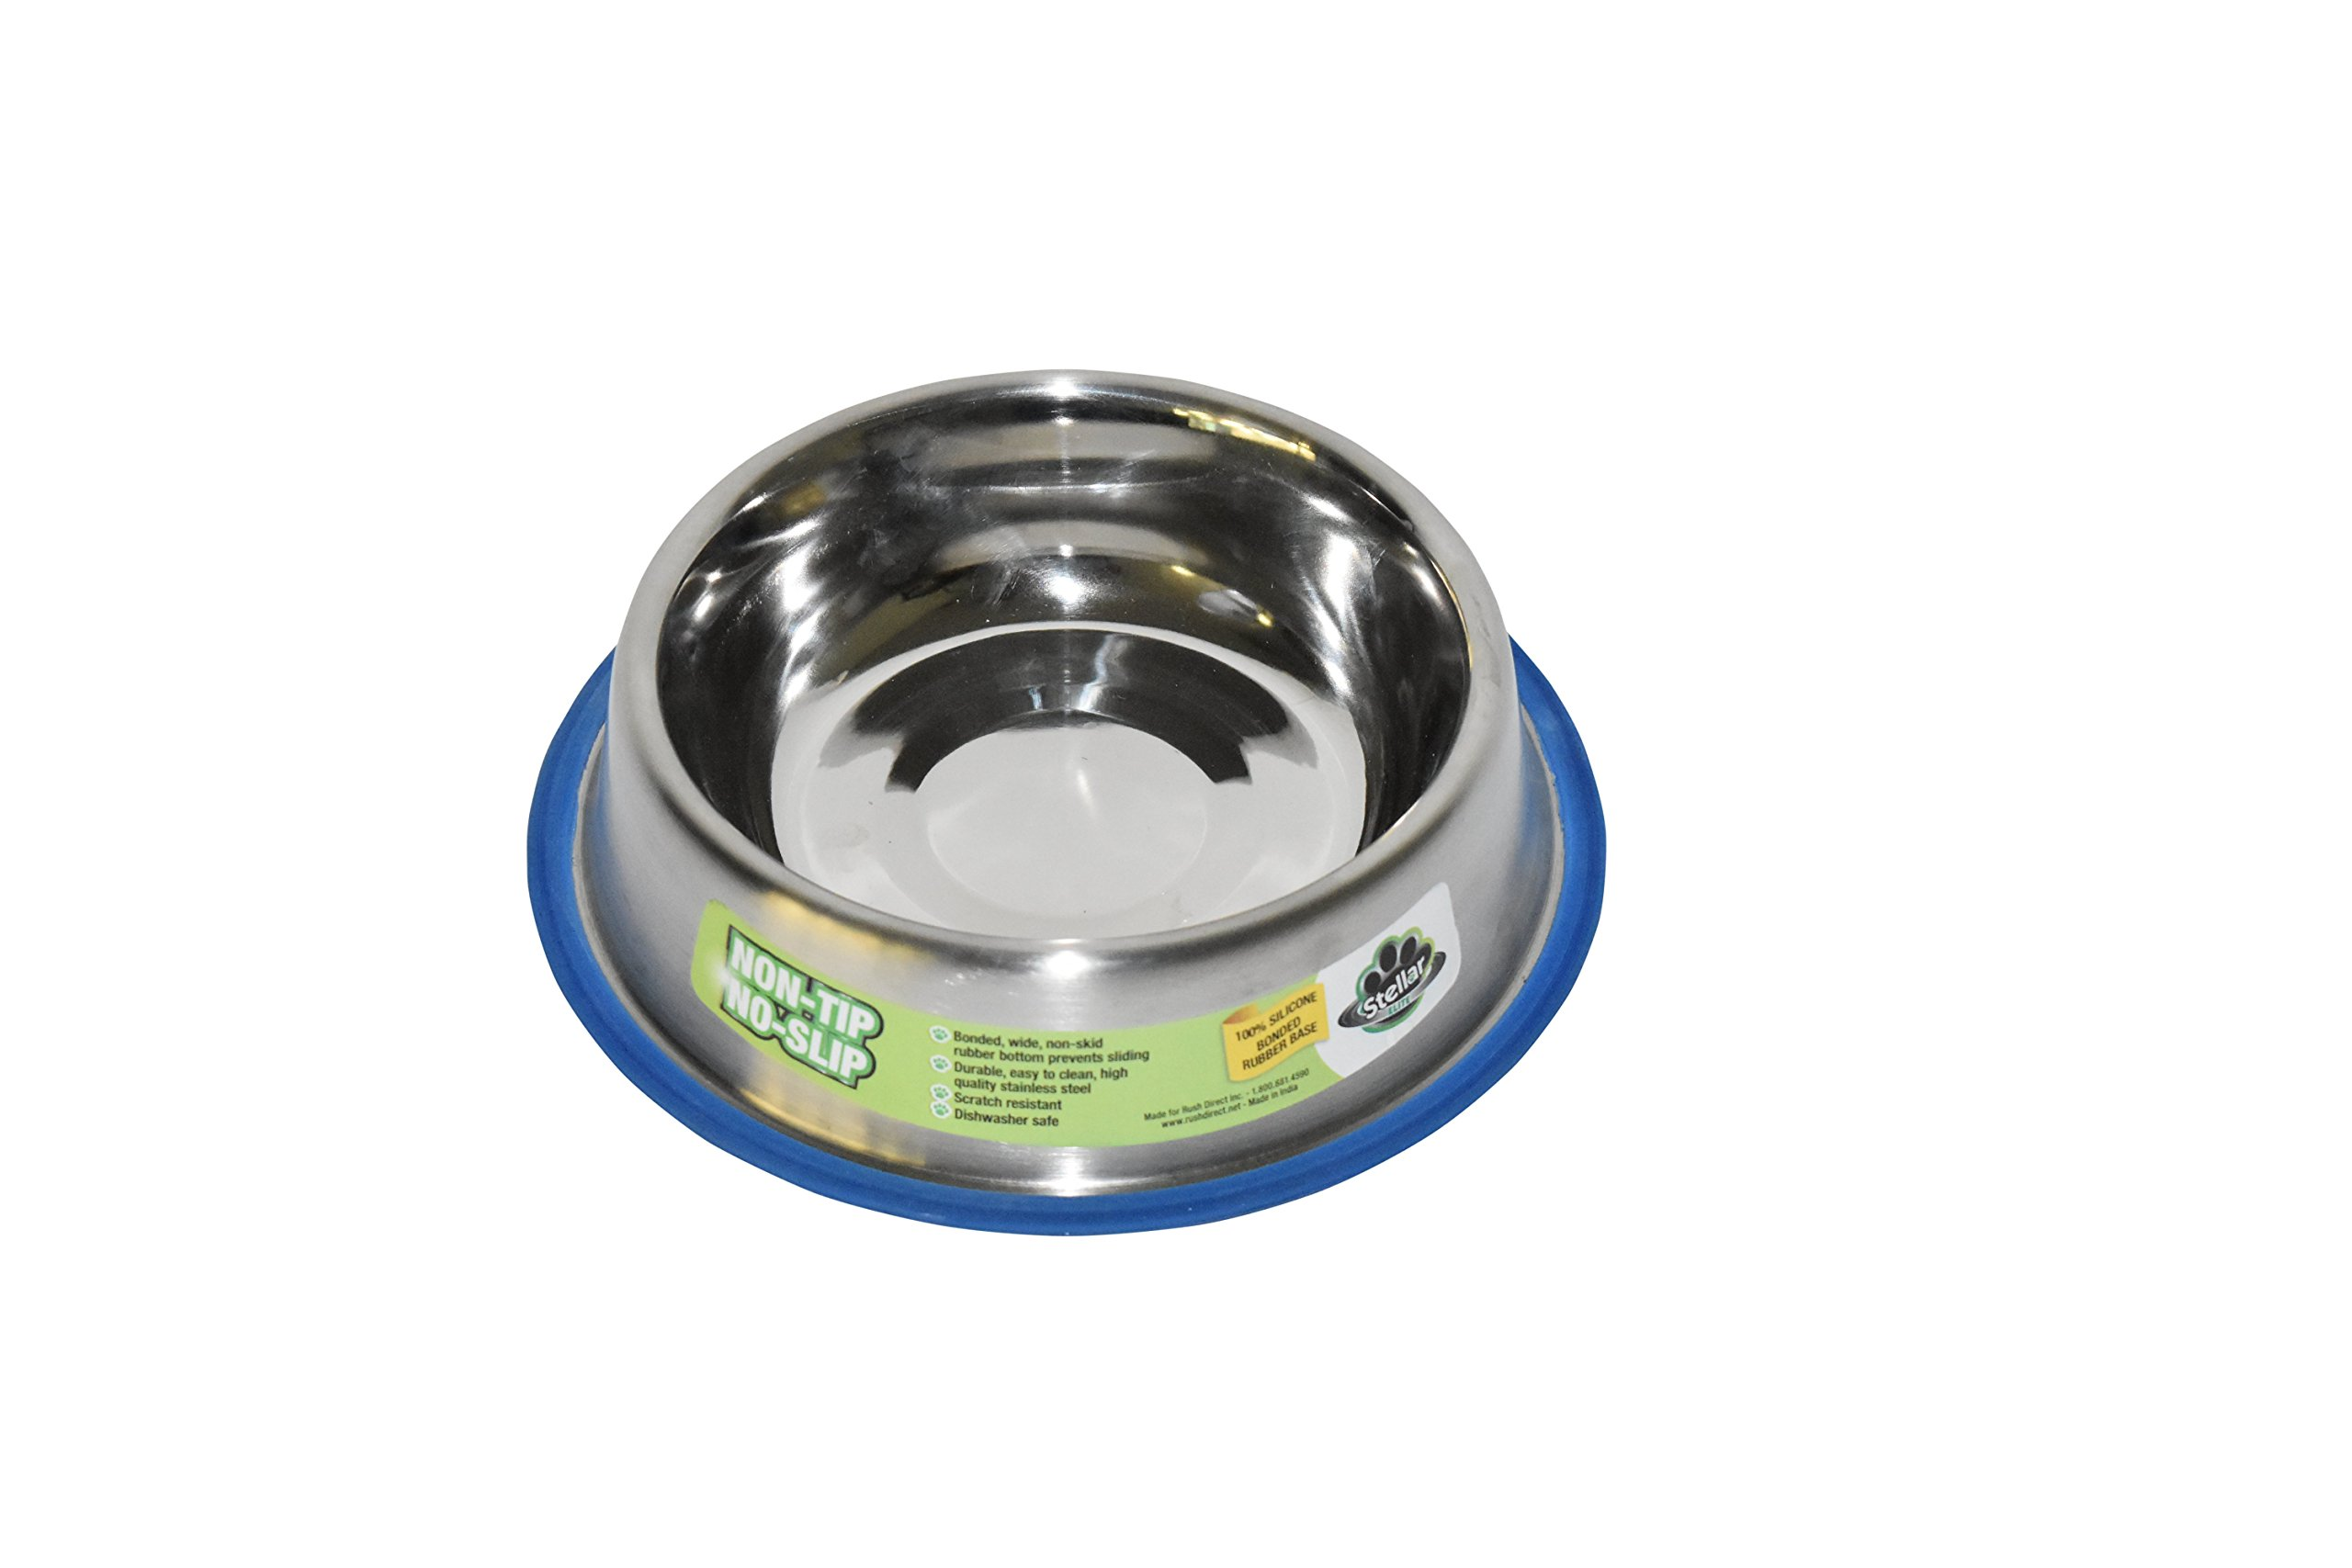 Stellar Bowls Non Tip Anti Skid Dish with 100% Silicon Bonded Rubber Ring, 24 oz by Stellar Bowls